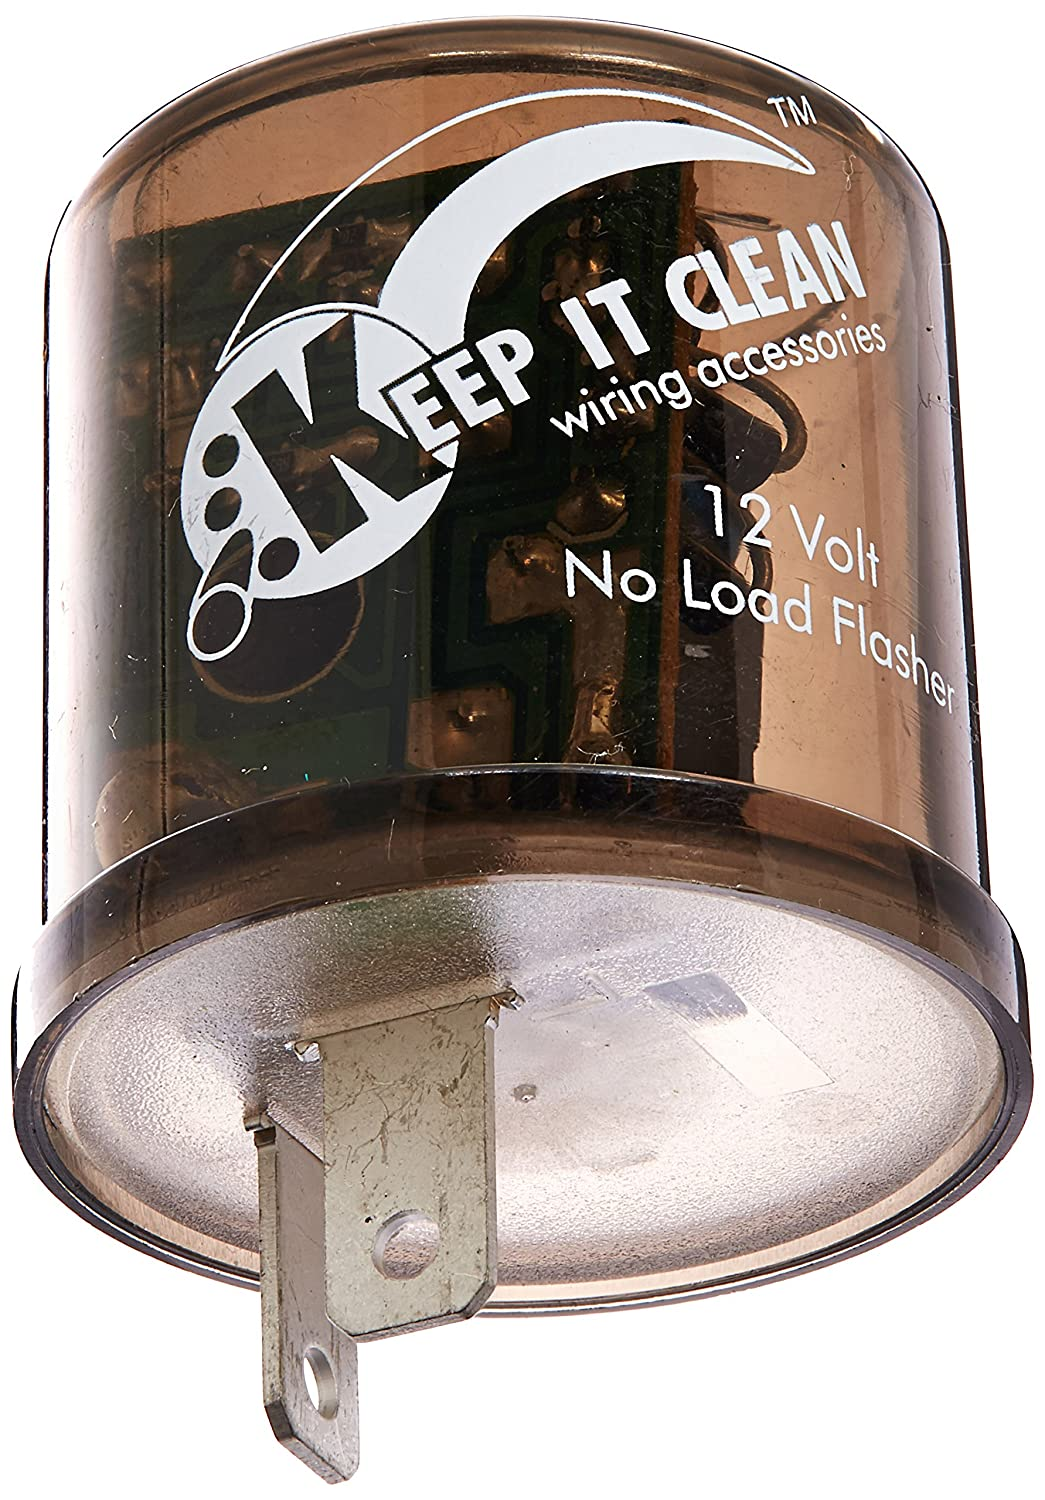 Keep It Clean 10853 Flasher No Load Fixed Flasher